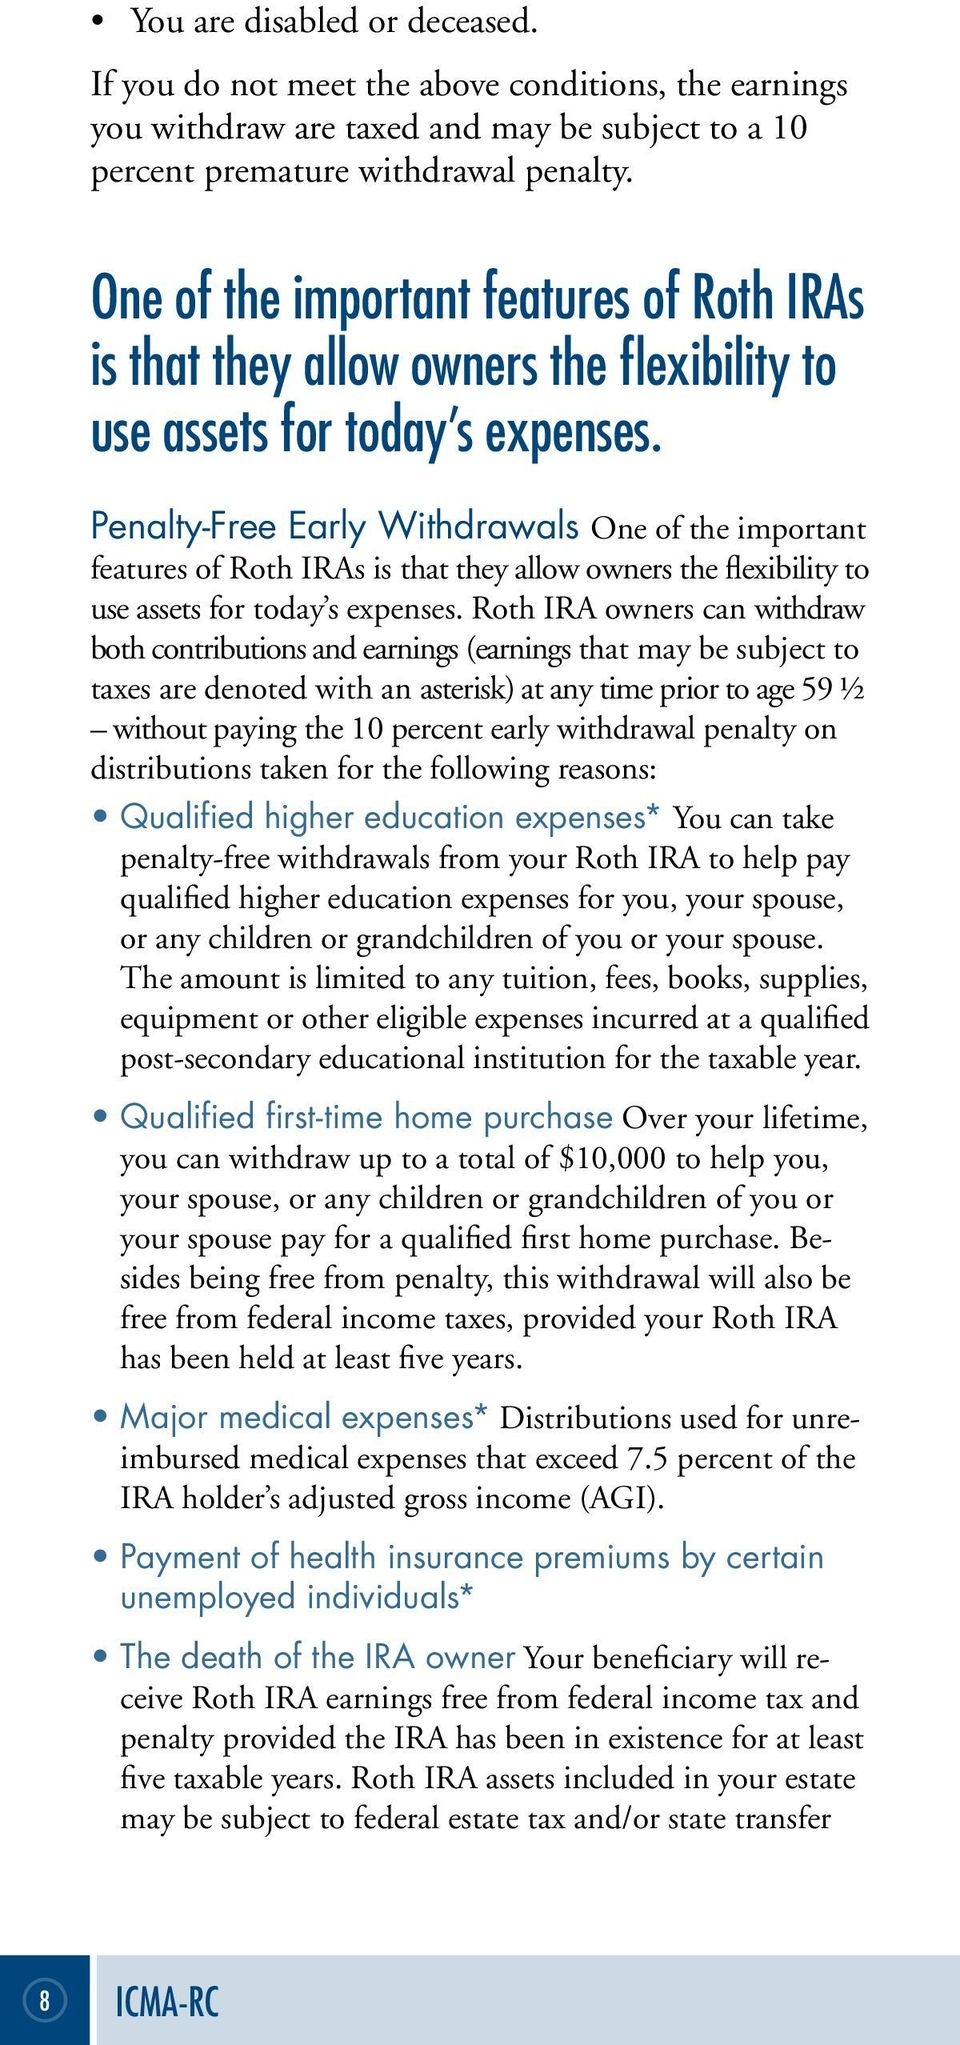 Penalty-Free Early Withdrawals  Roth IRA owners can withdraw both contributions and earnings (earnings that may be subject to taxes are denoted with an asterisk) at any time prior to age 59 ½ without